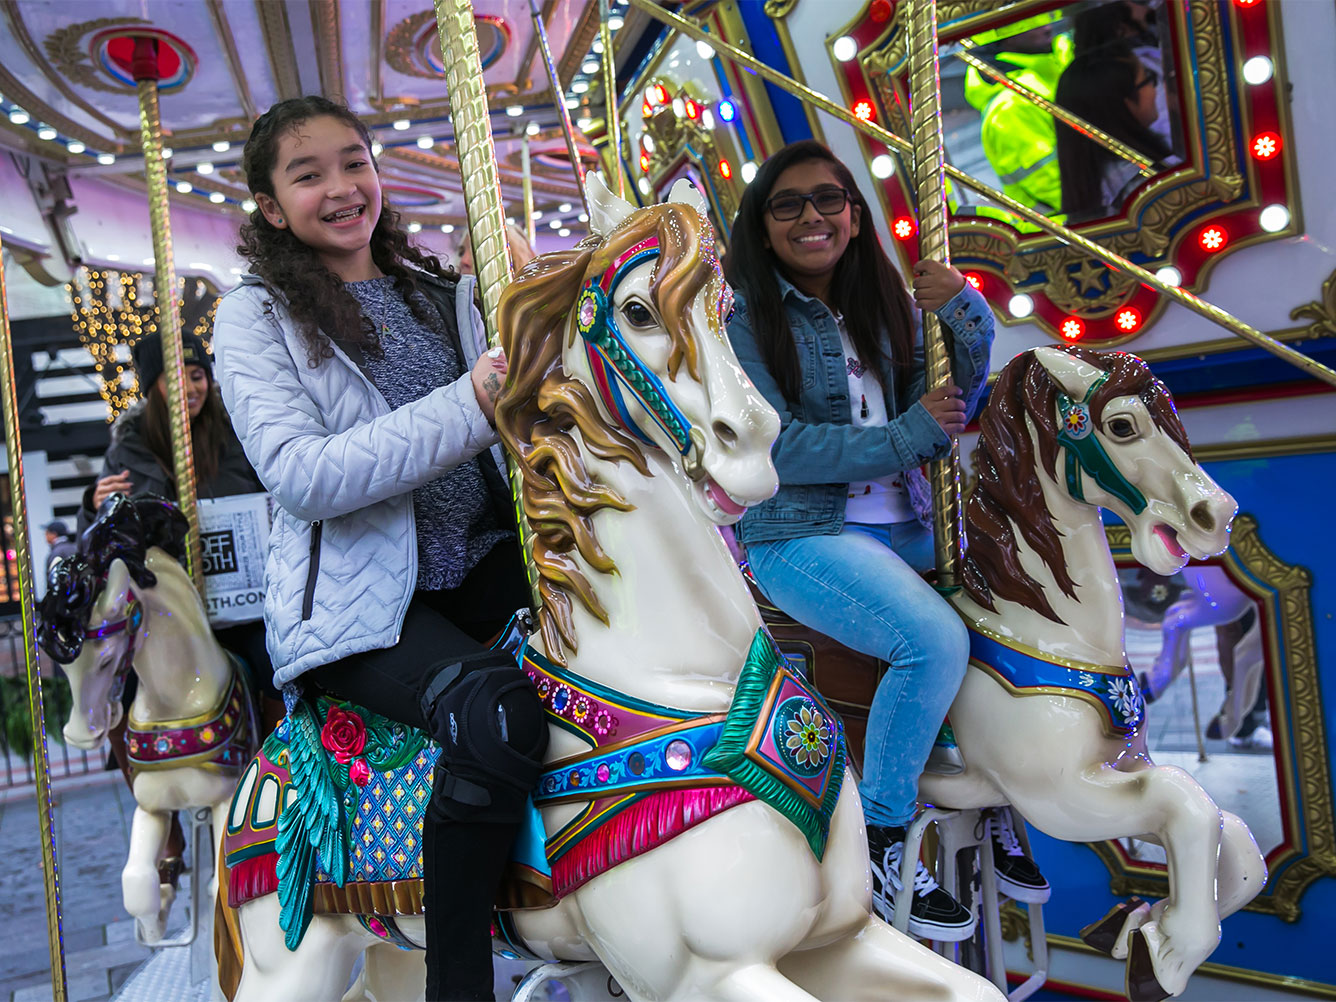 Two young people smiling and riding the carousel in Westlake Park